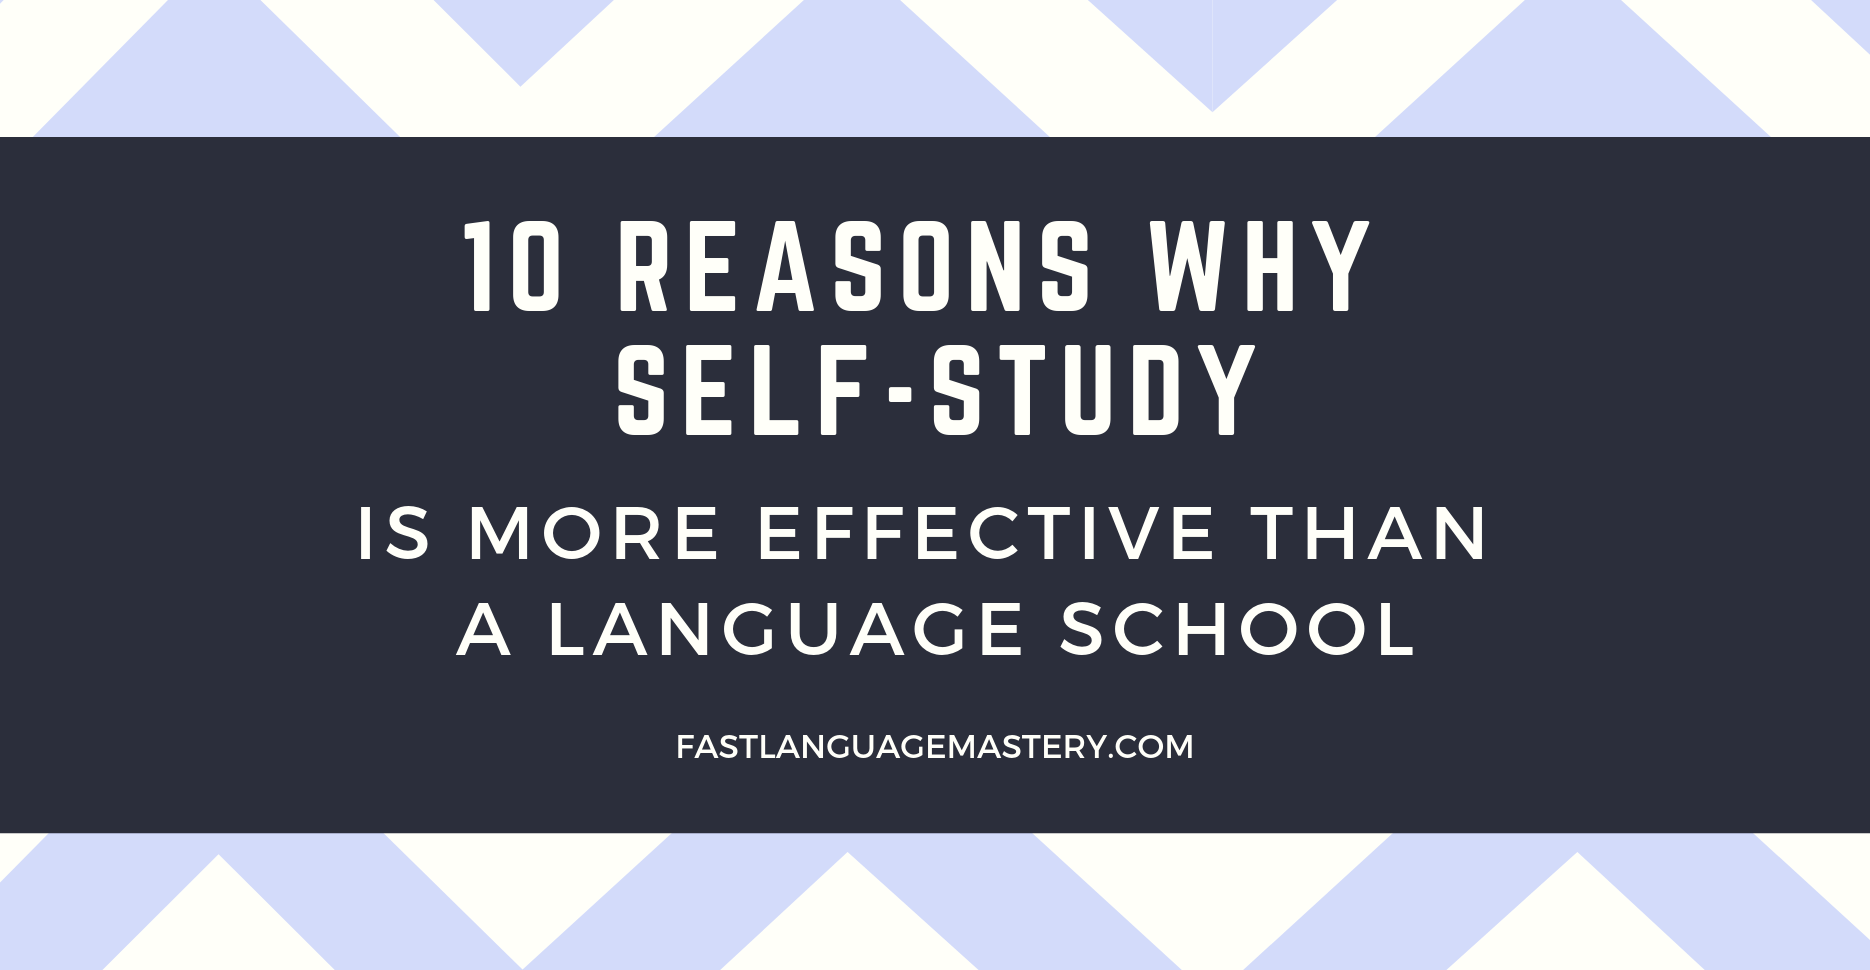 10 Reasons why Self-Study of a Language is more effective than a School